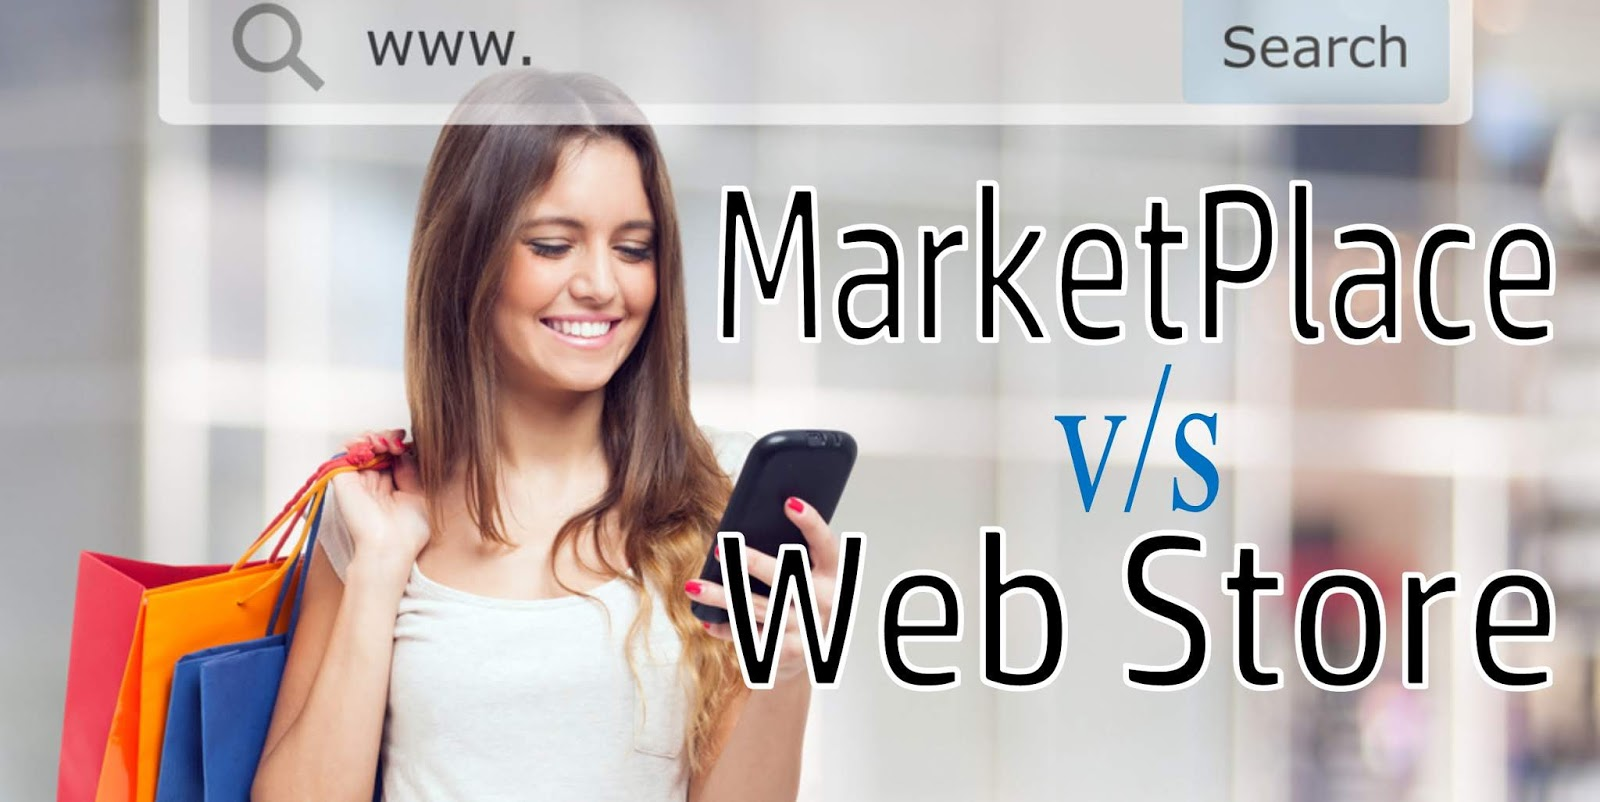 Web Stores VS Marketplaces